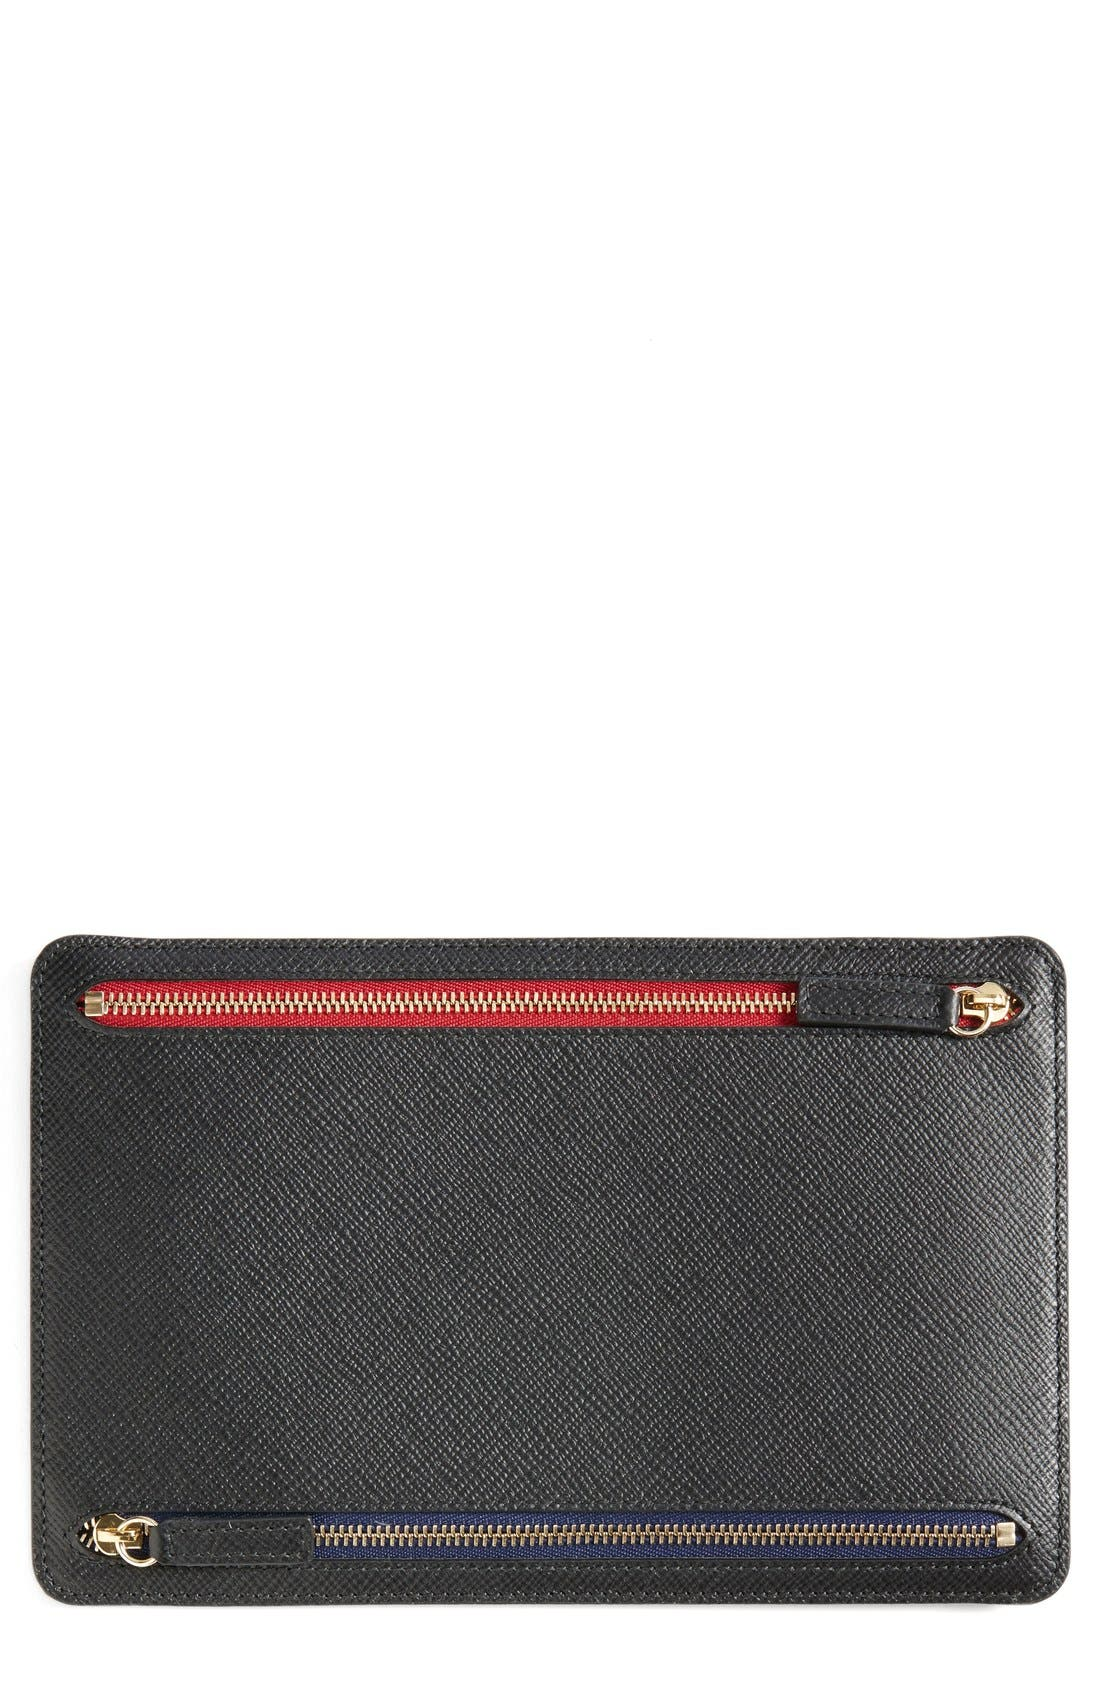 'Panama' Zip Currency Case,                             Alternate thumbnail 3, color,                             Black